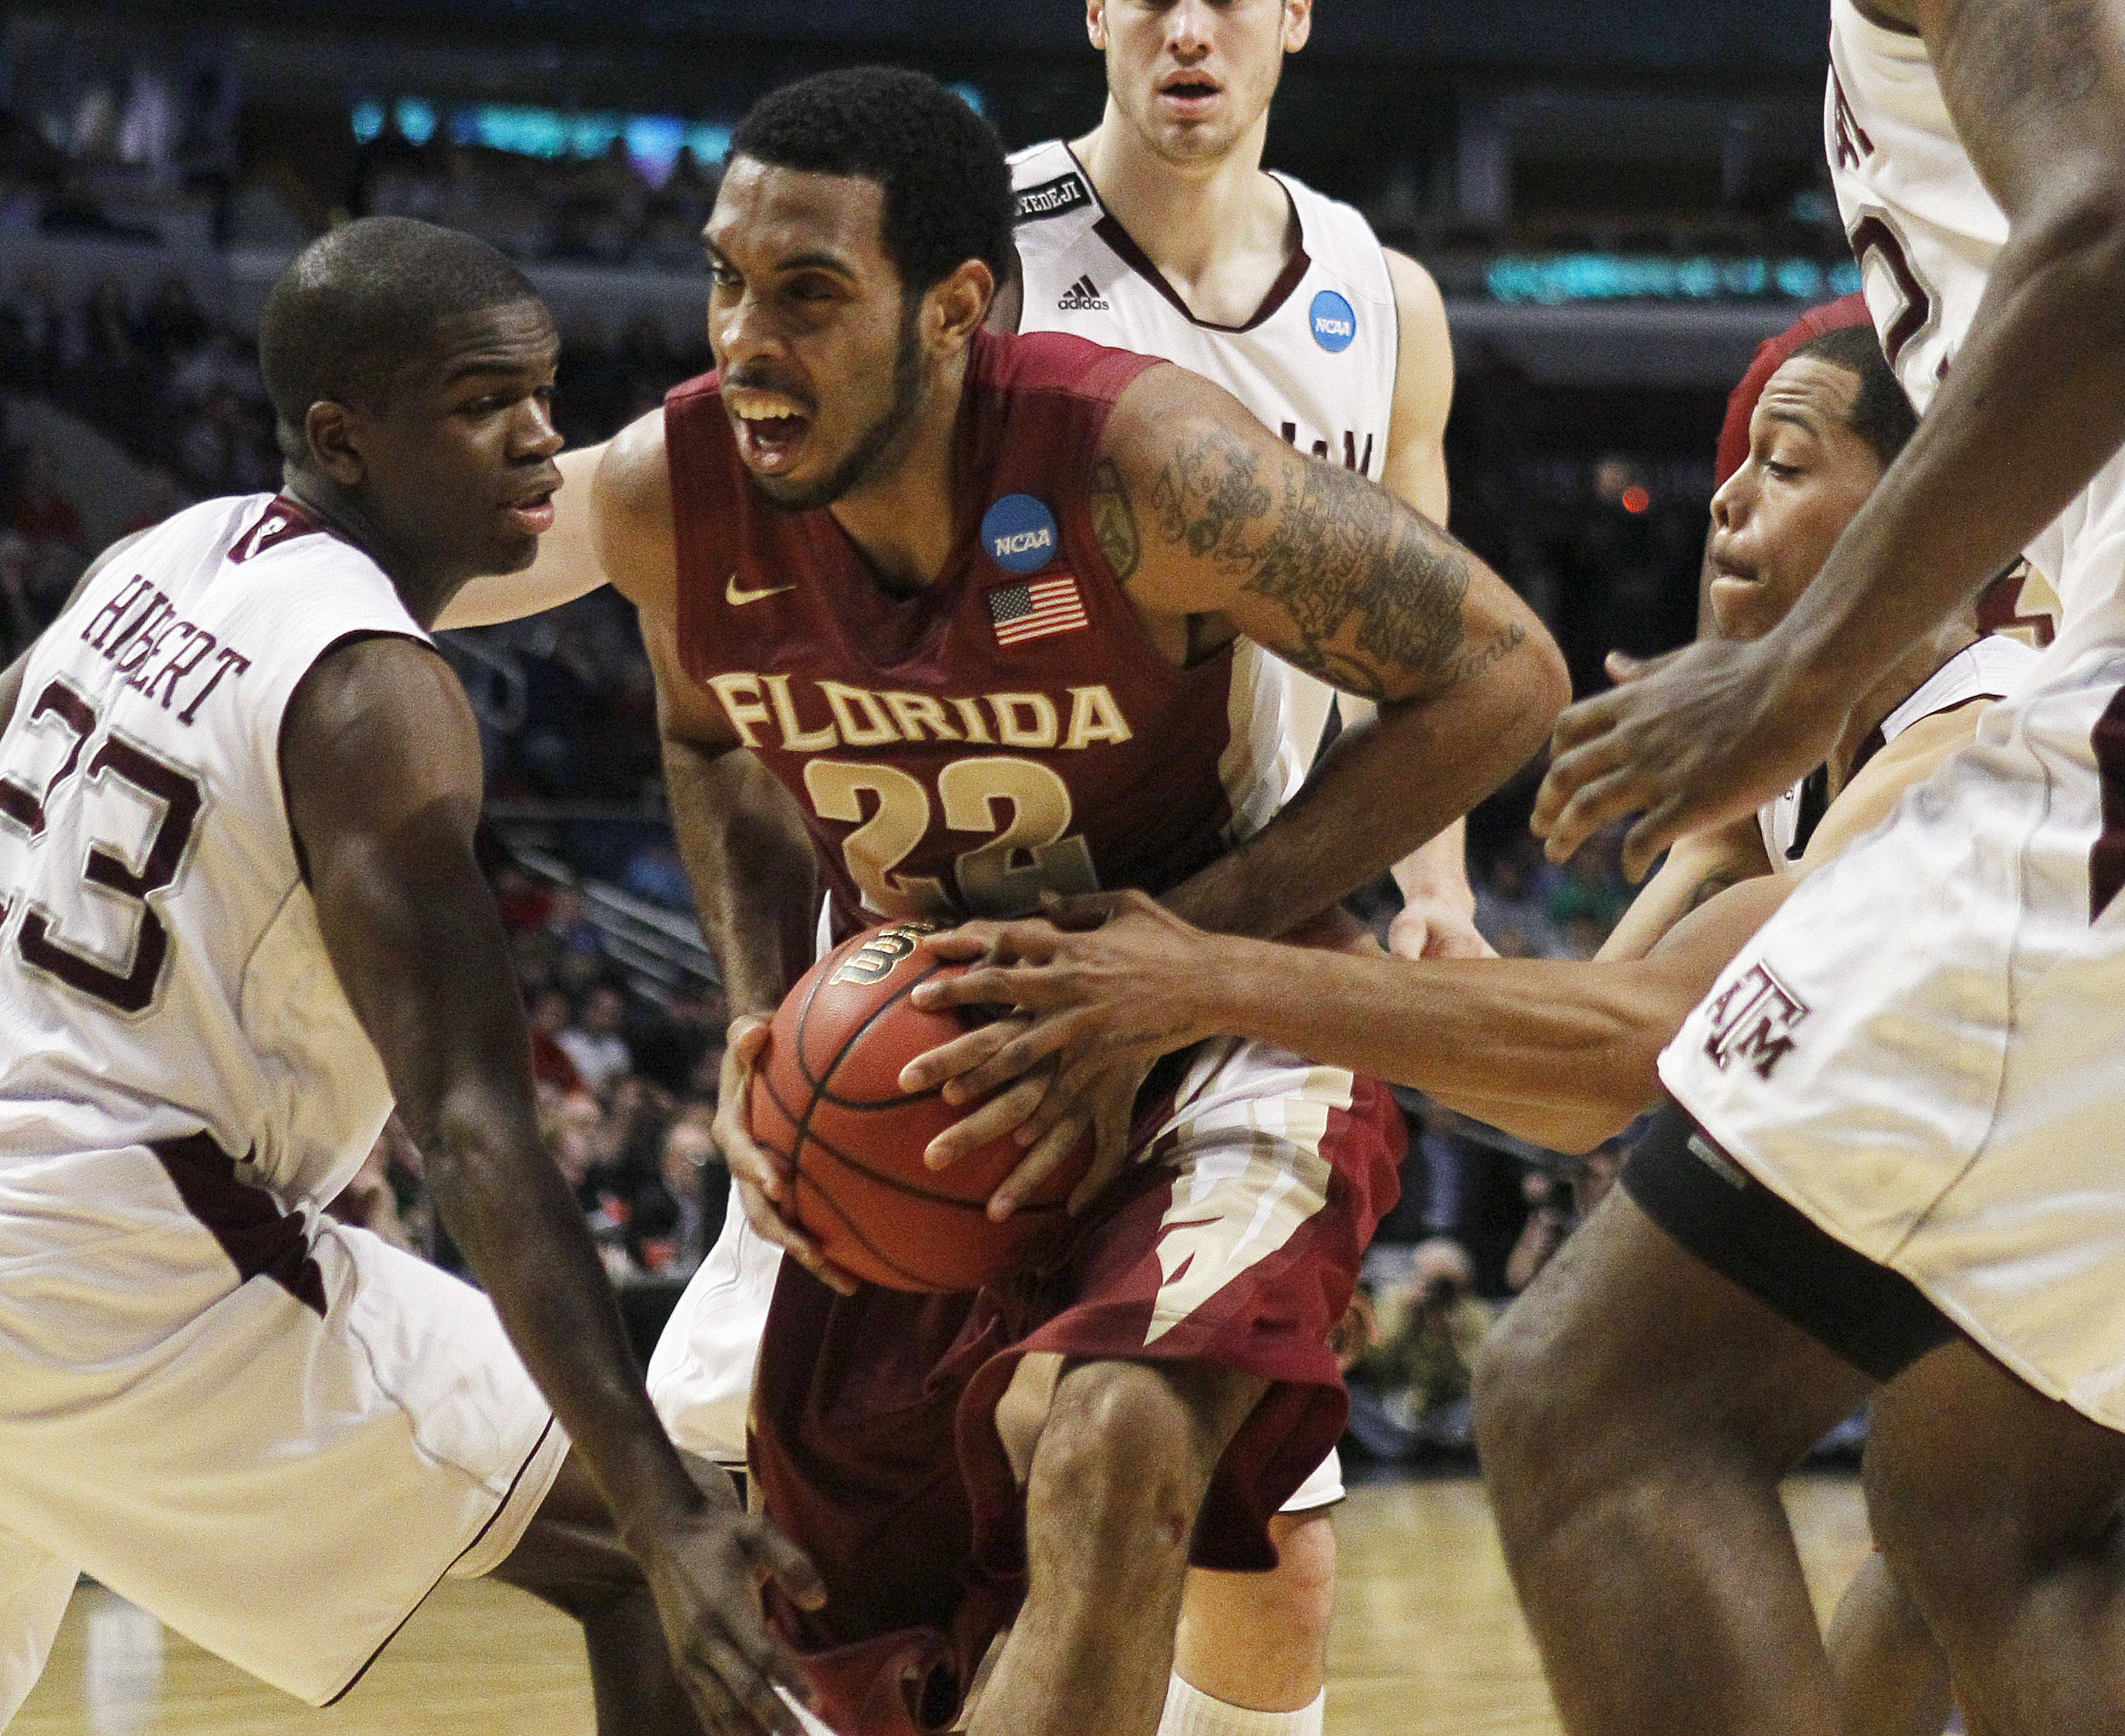 Texas A&M's Naji Hibbert and B.J. Holmes defend Florida State's Derwin Kitchen as he drives the lane in the first half. (AP Photo/Charles Rex Arbogast)